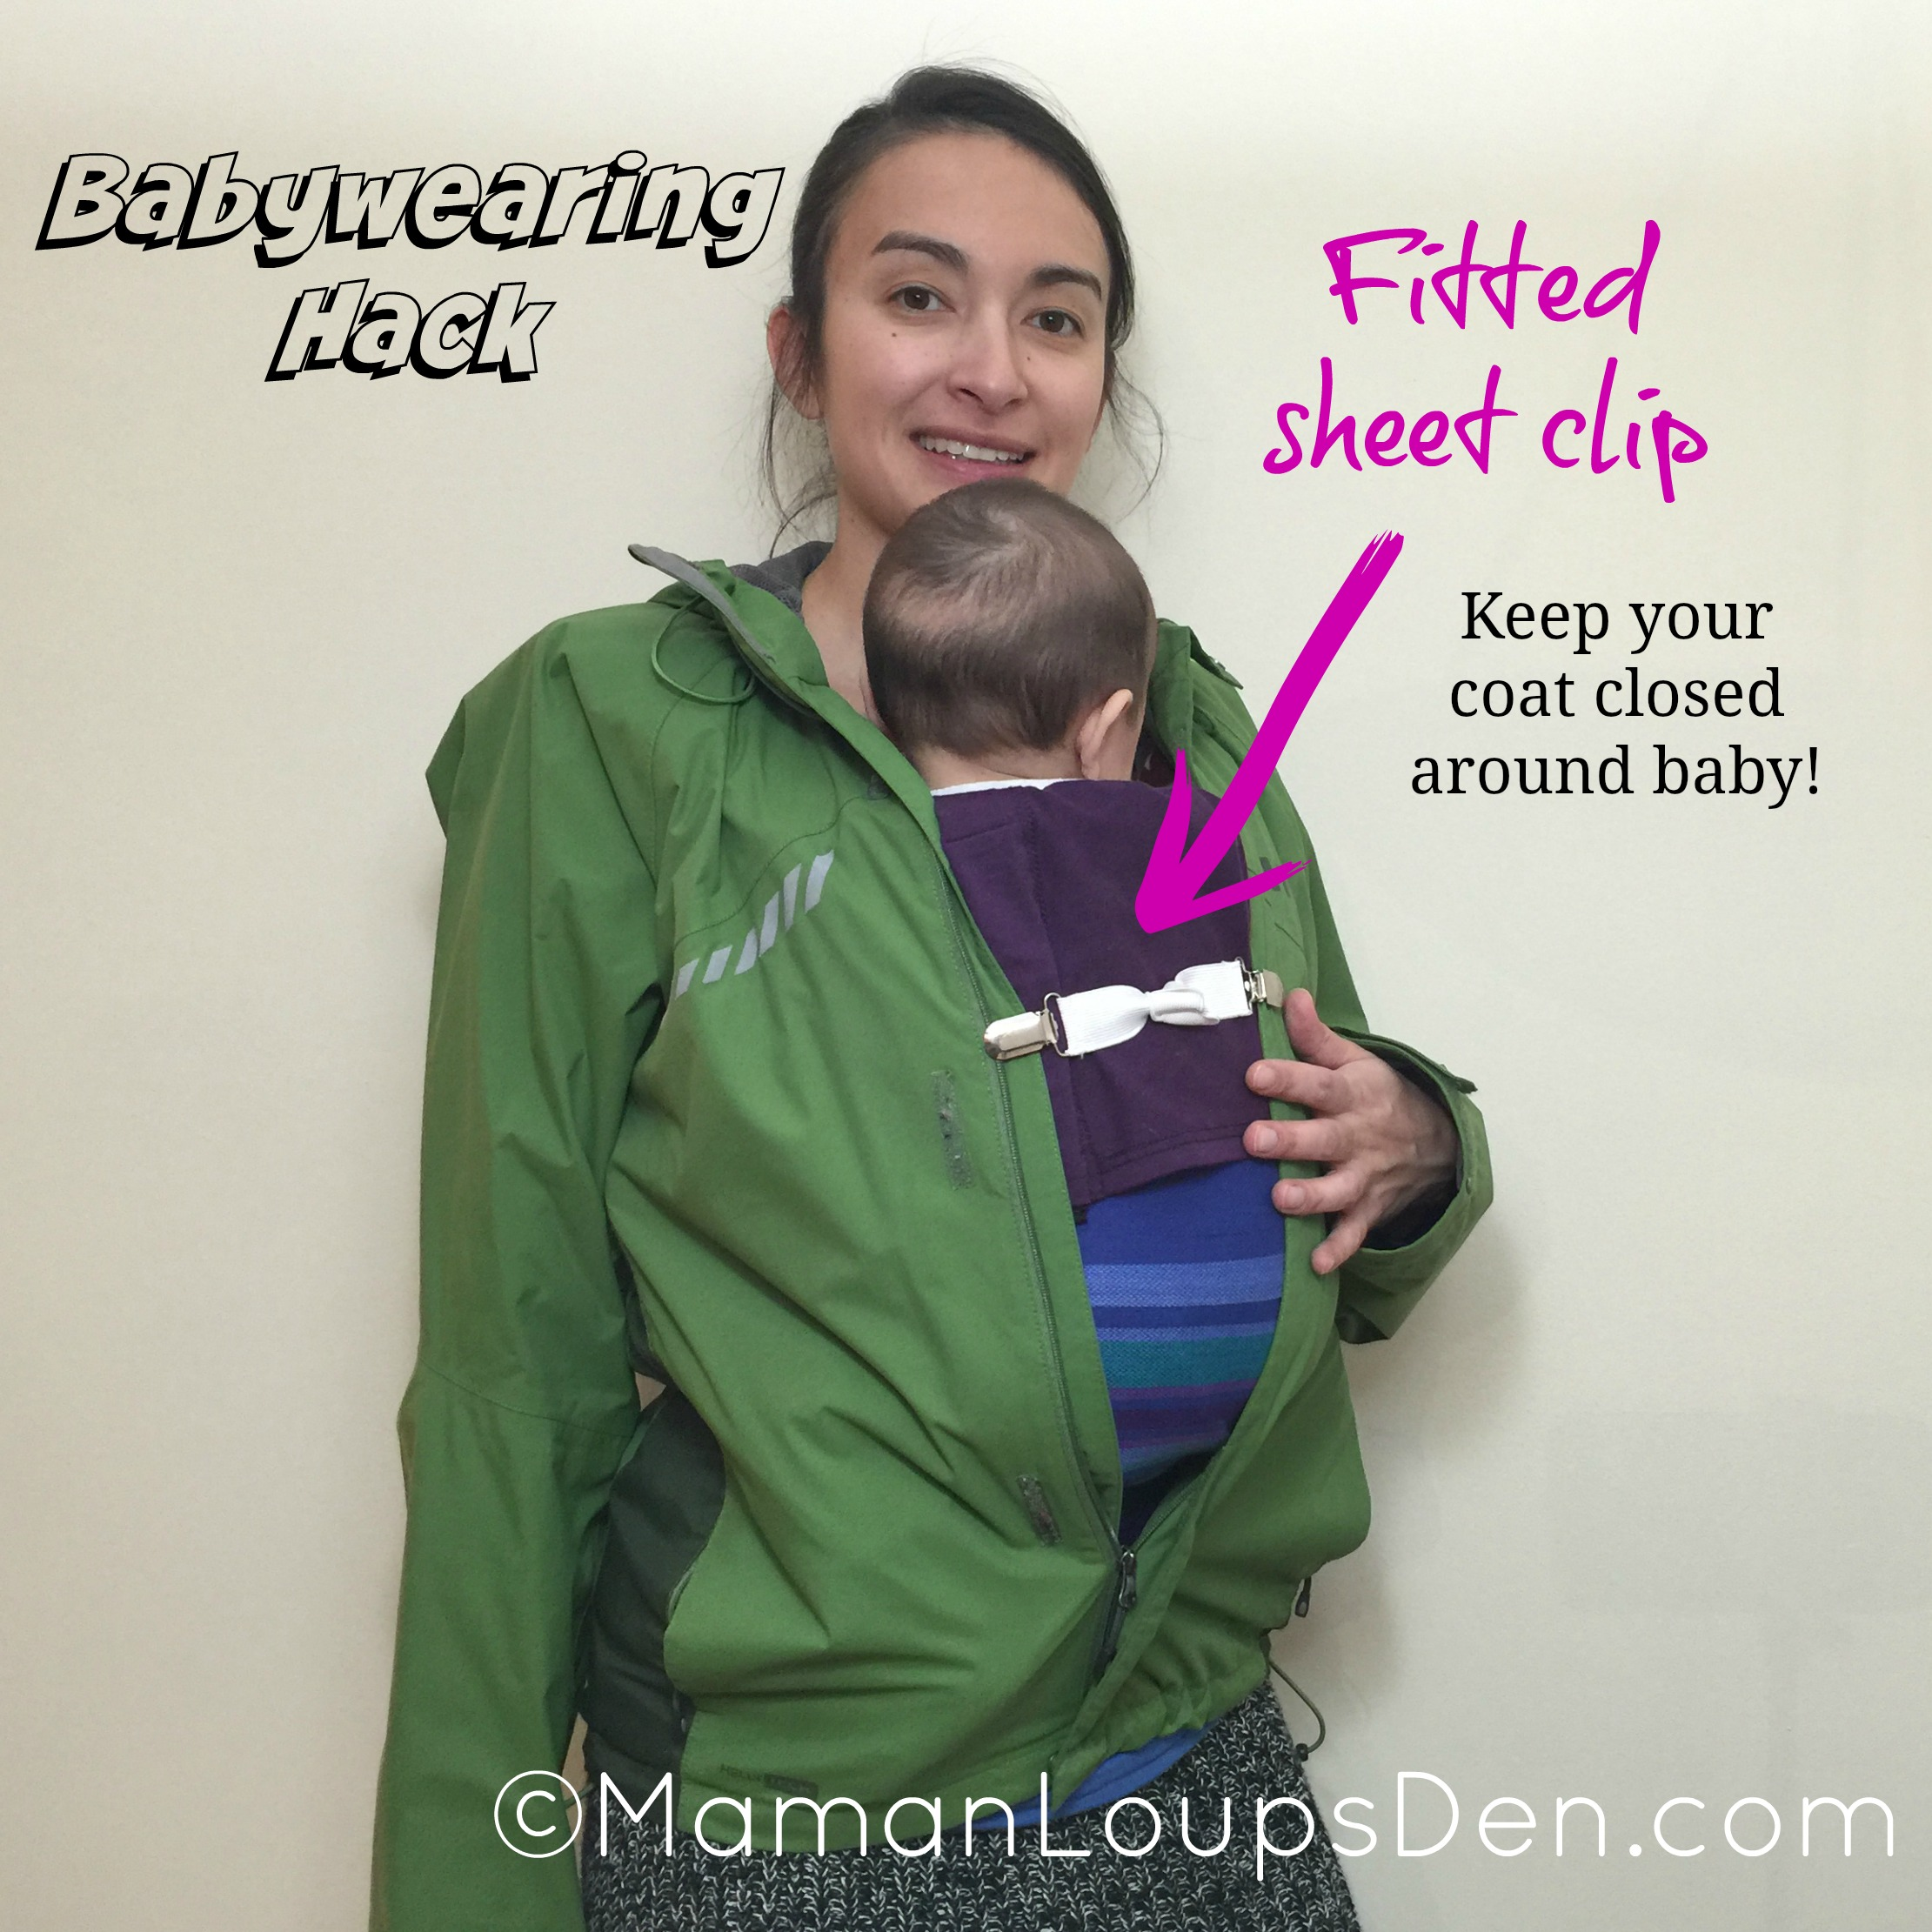 501e9b8d3f9 Fitted Sheet Clips to Keep Coat Closed Around Baby - Babywearing Hack -  Maman Loup s Den